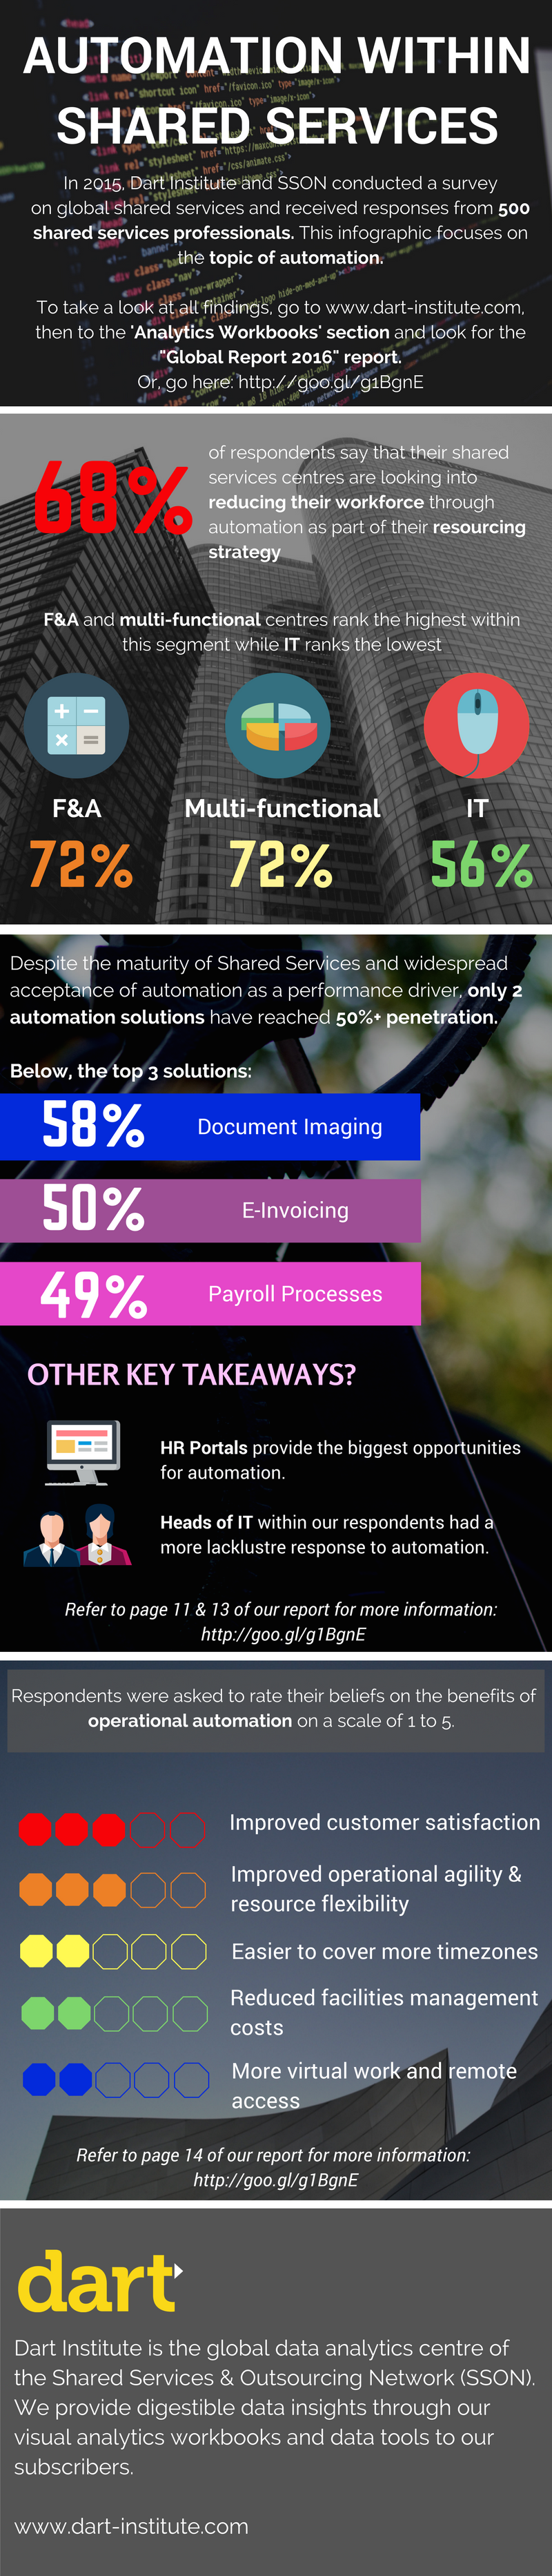 Infographic on automation within shared services